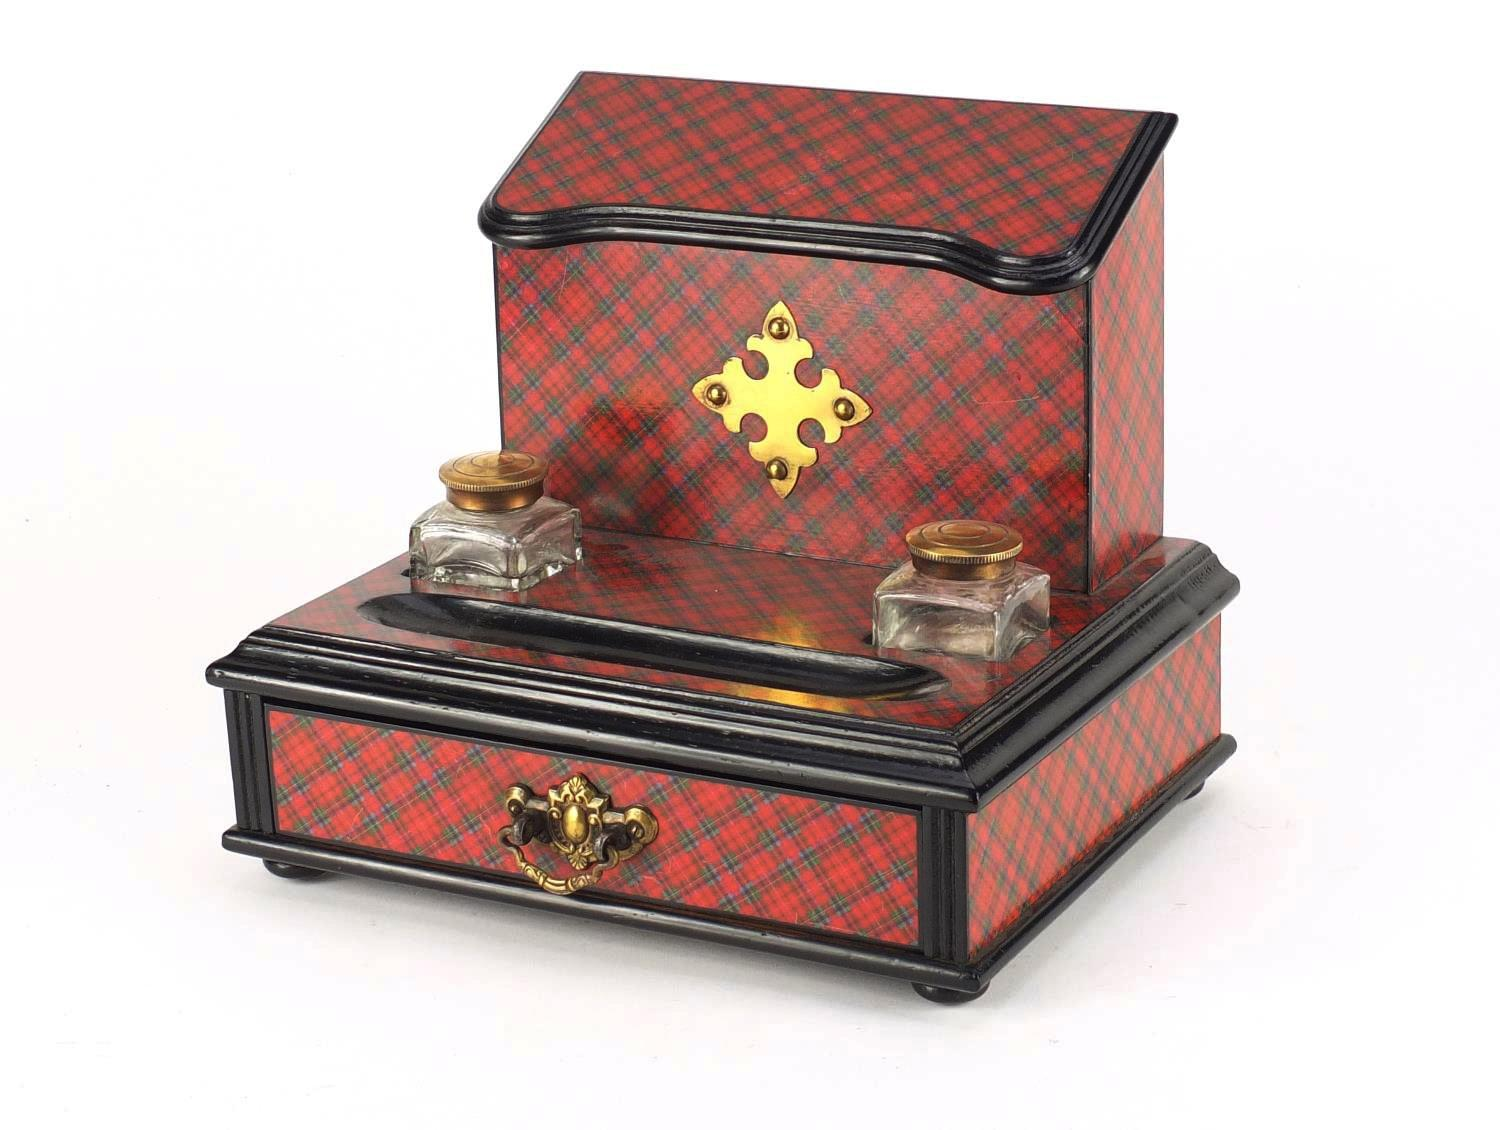 Lot 30 - Victorian Tartanware desk stand, fitted with a letter rack and a pair of glass inkwells above a base